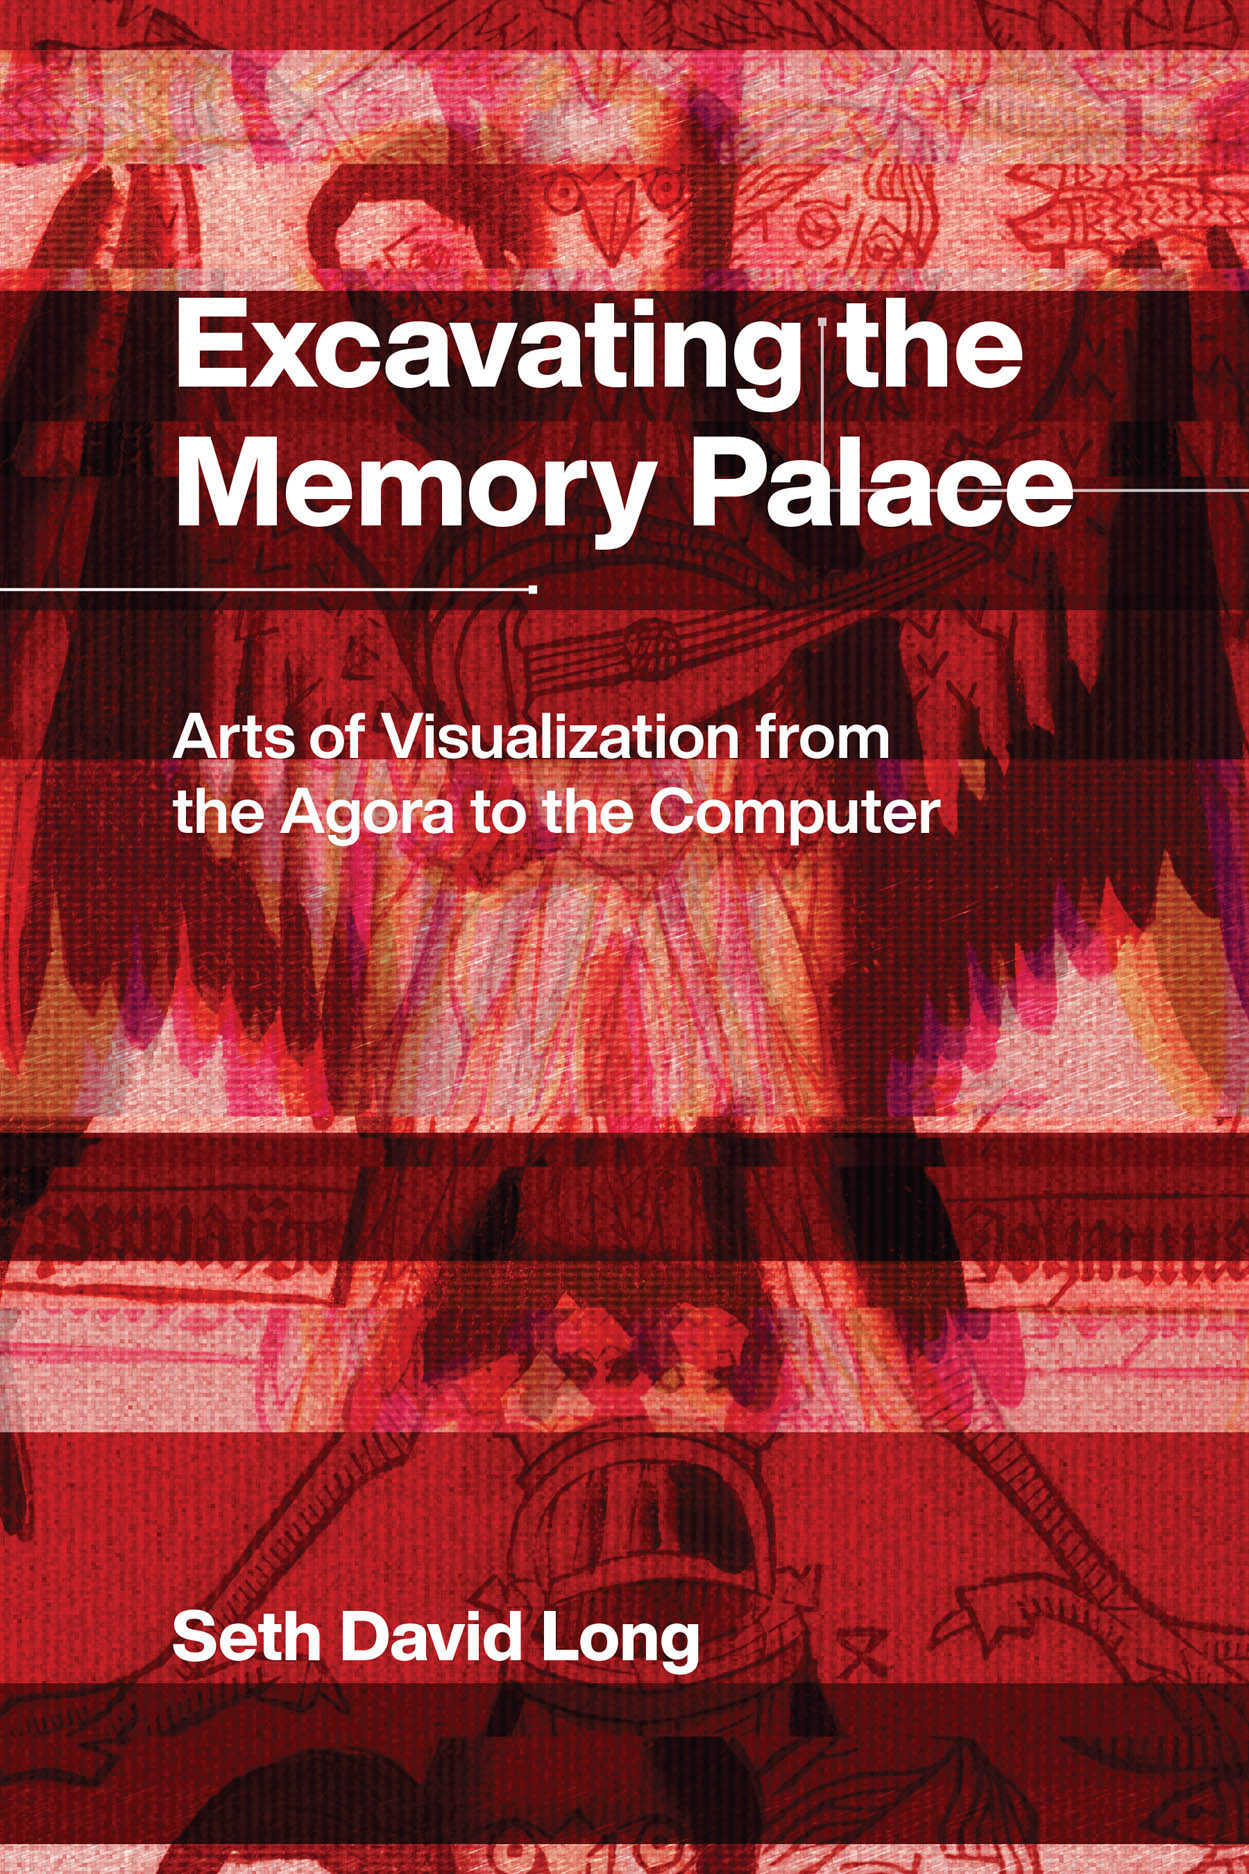 Excavating the Memory Palace: Arts of Visualization from the Agora to the Computer